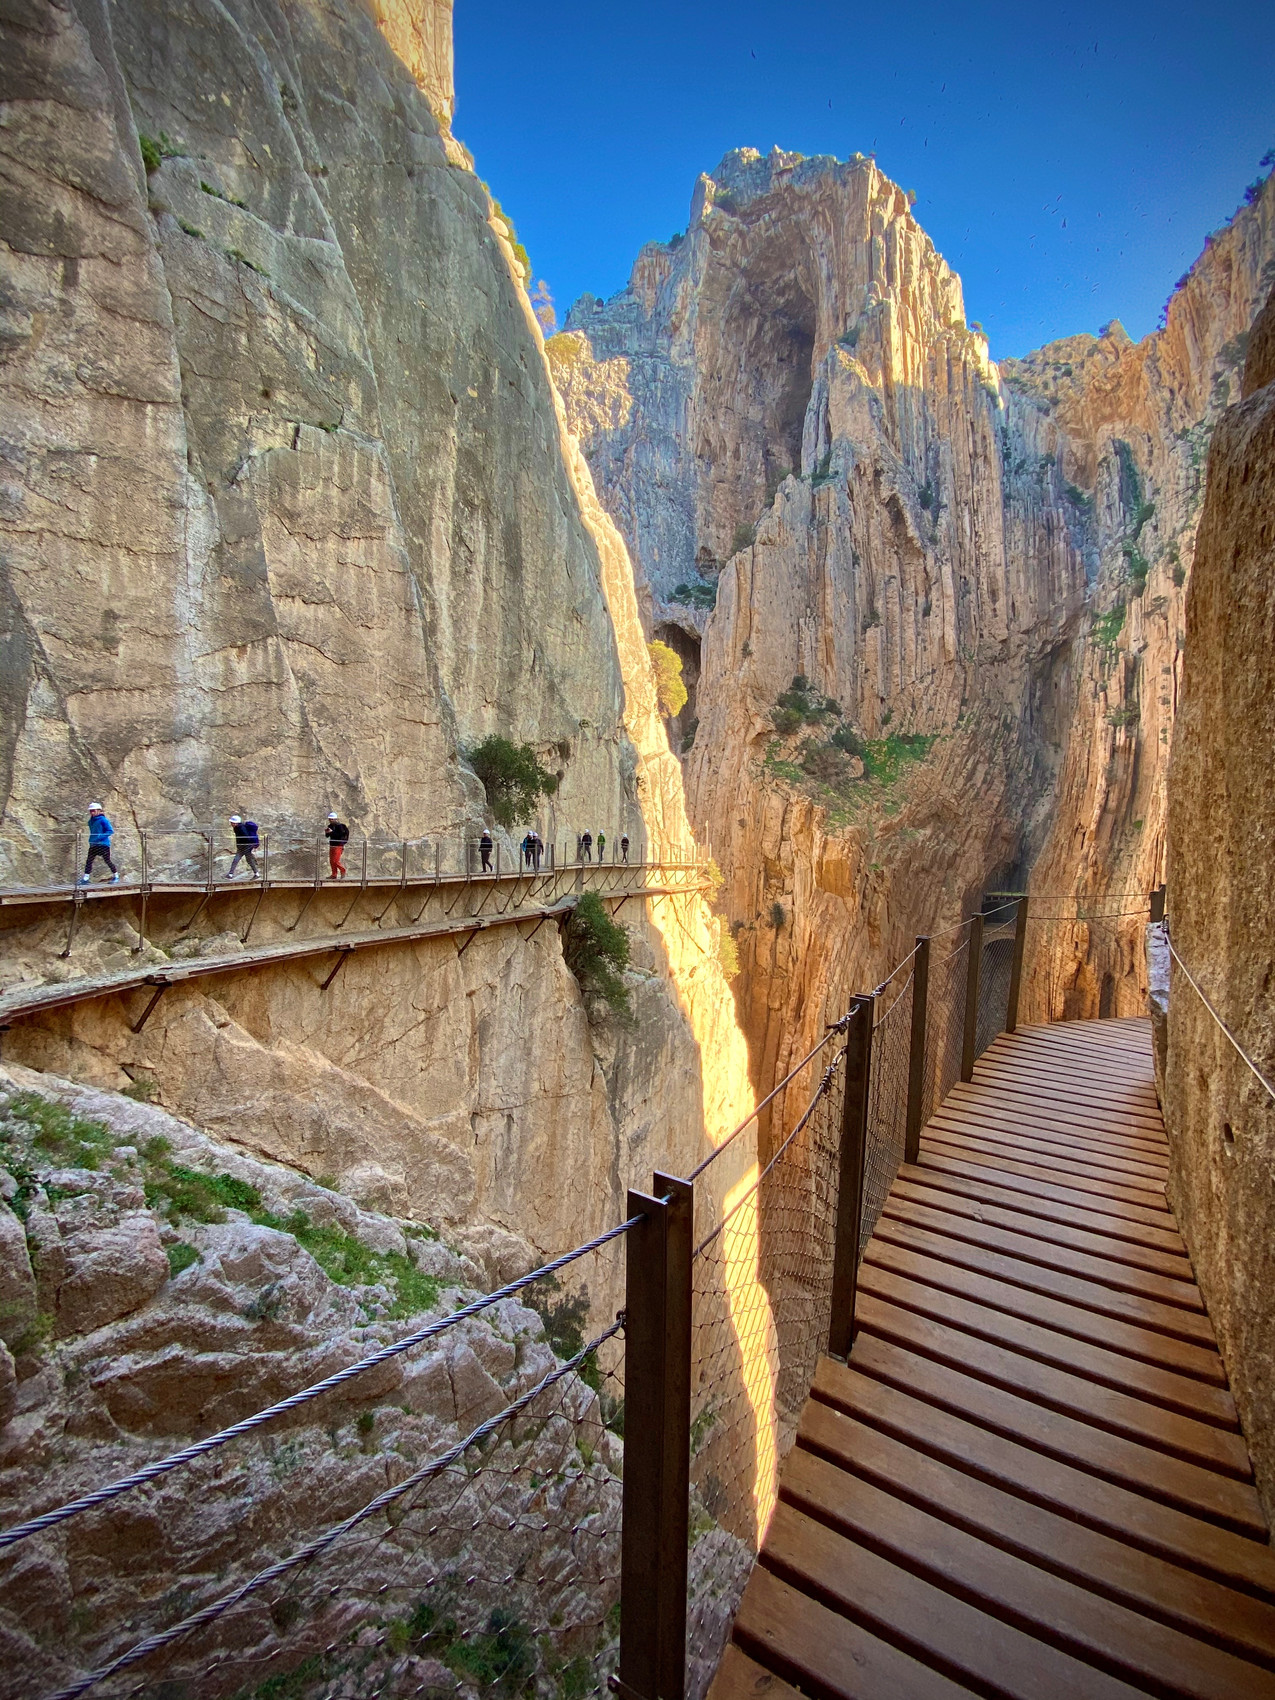 Caminito Del Rey, Malaga Spain - See our complete Southern Spain road trip itinerary at Paradox Travels.